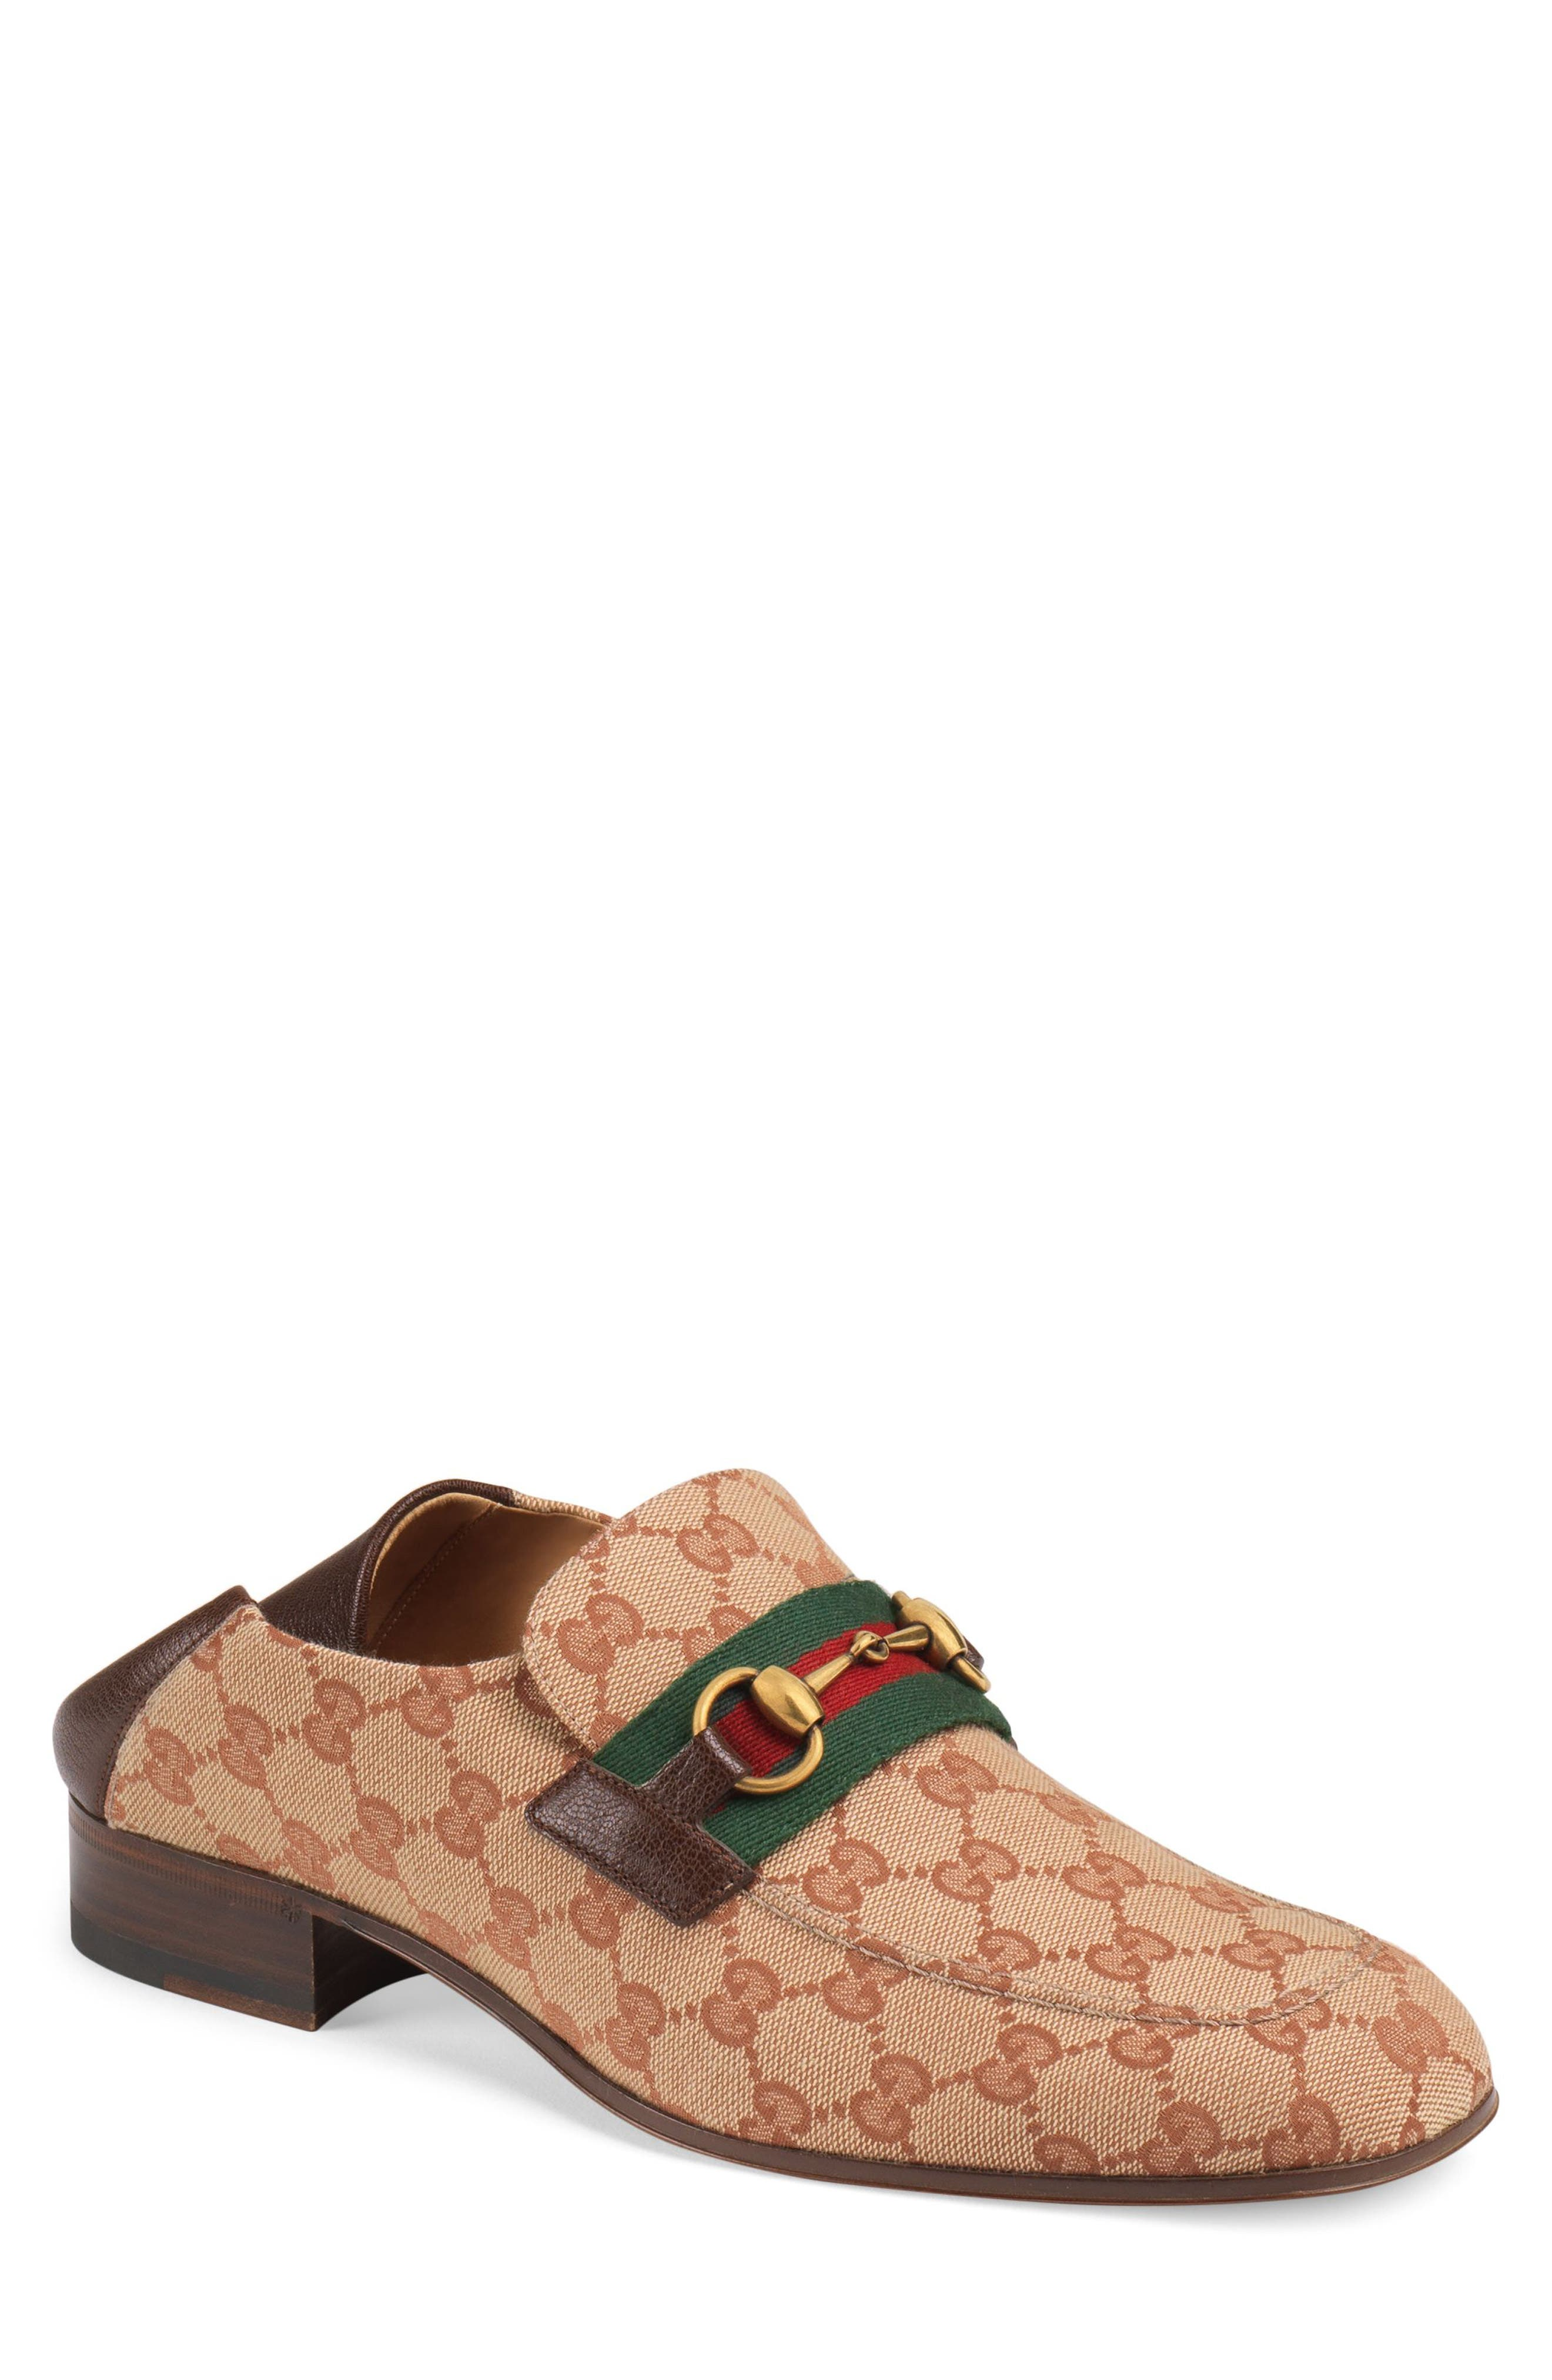 GUCCI,                             Horsebit Collapsible Leather Loafer,                             Main thumbnail 1, color,                             BEIGE/ ROSE